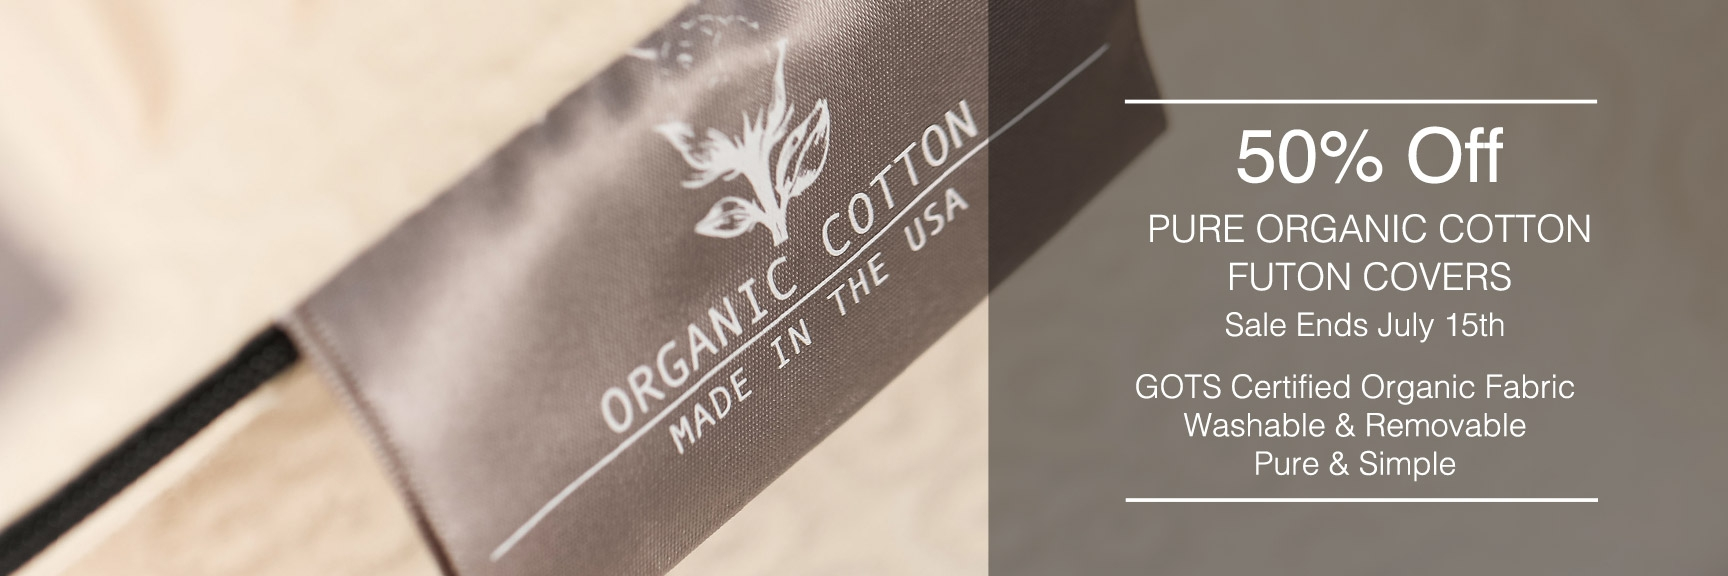 Organic Cotton Futon Covers